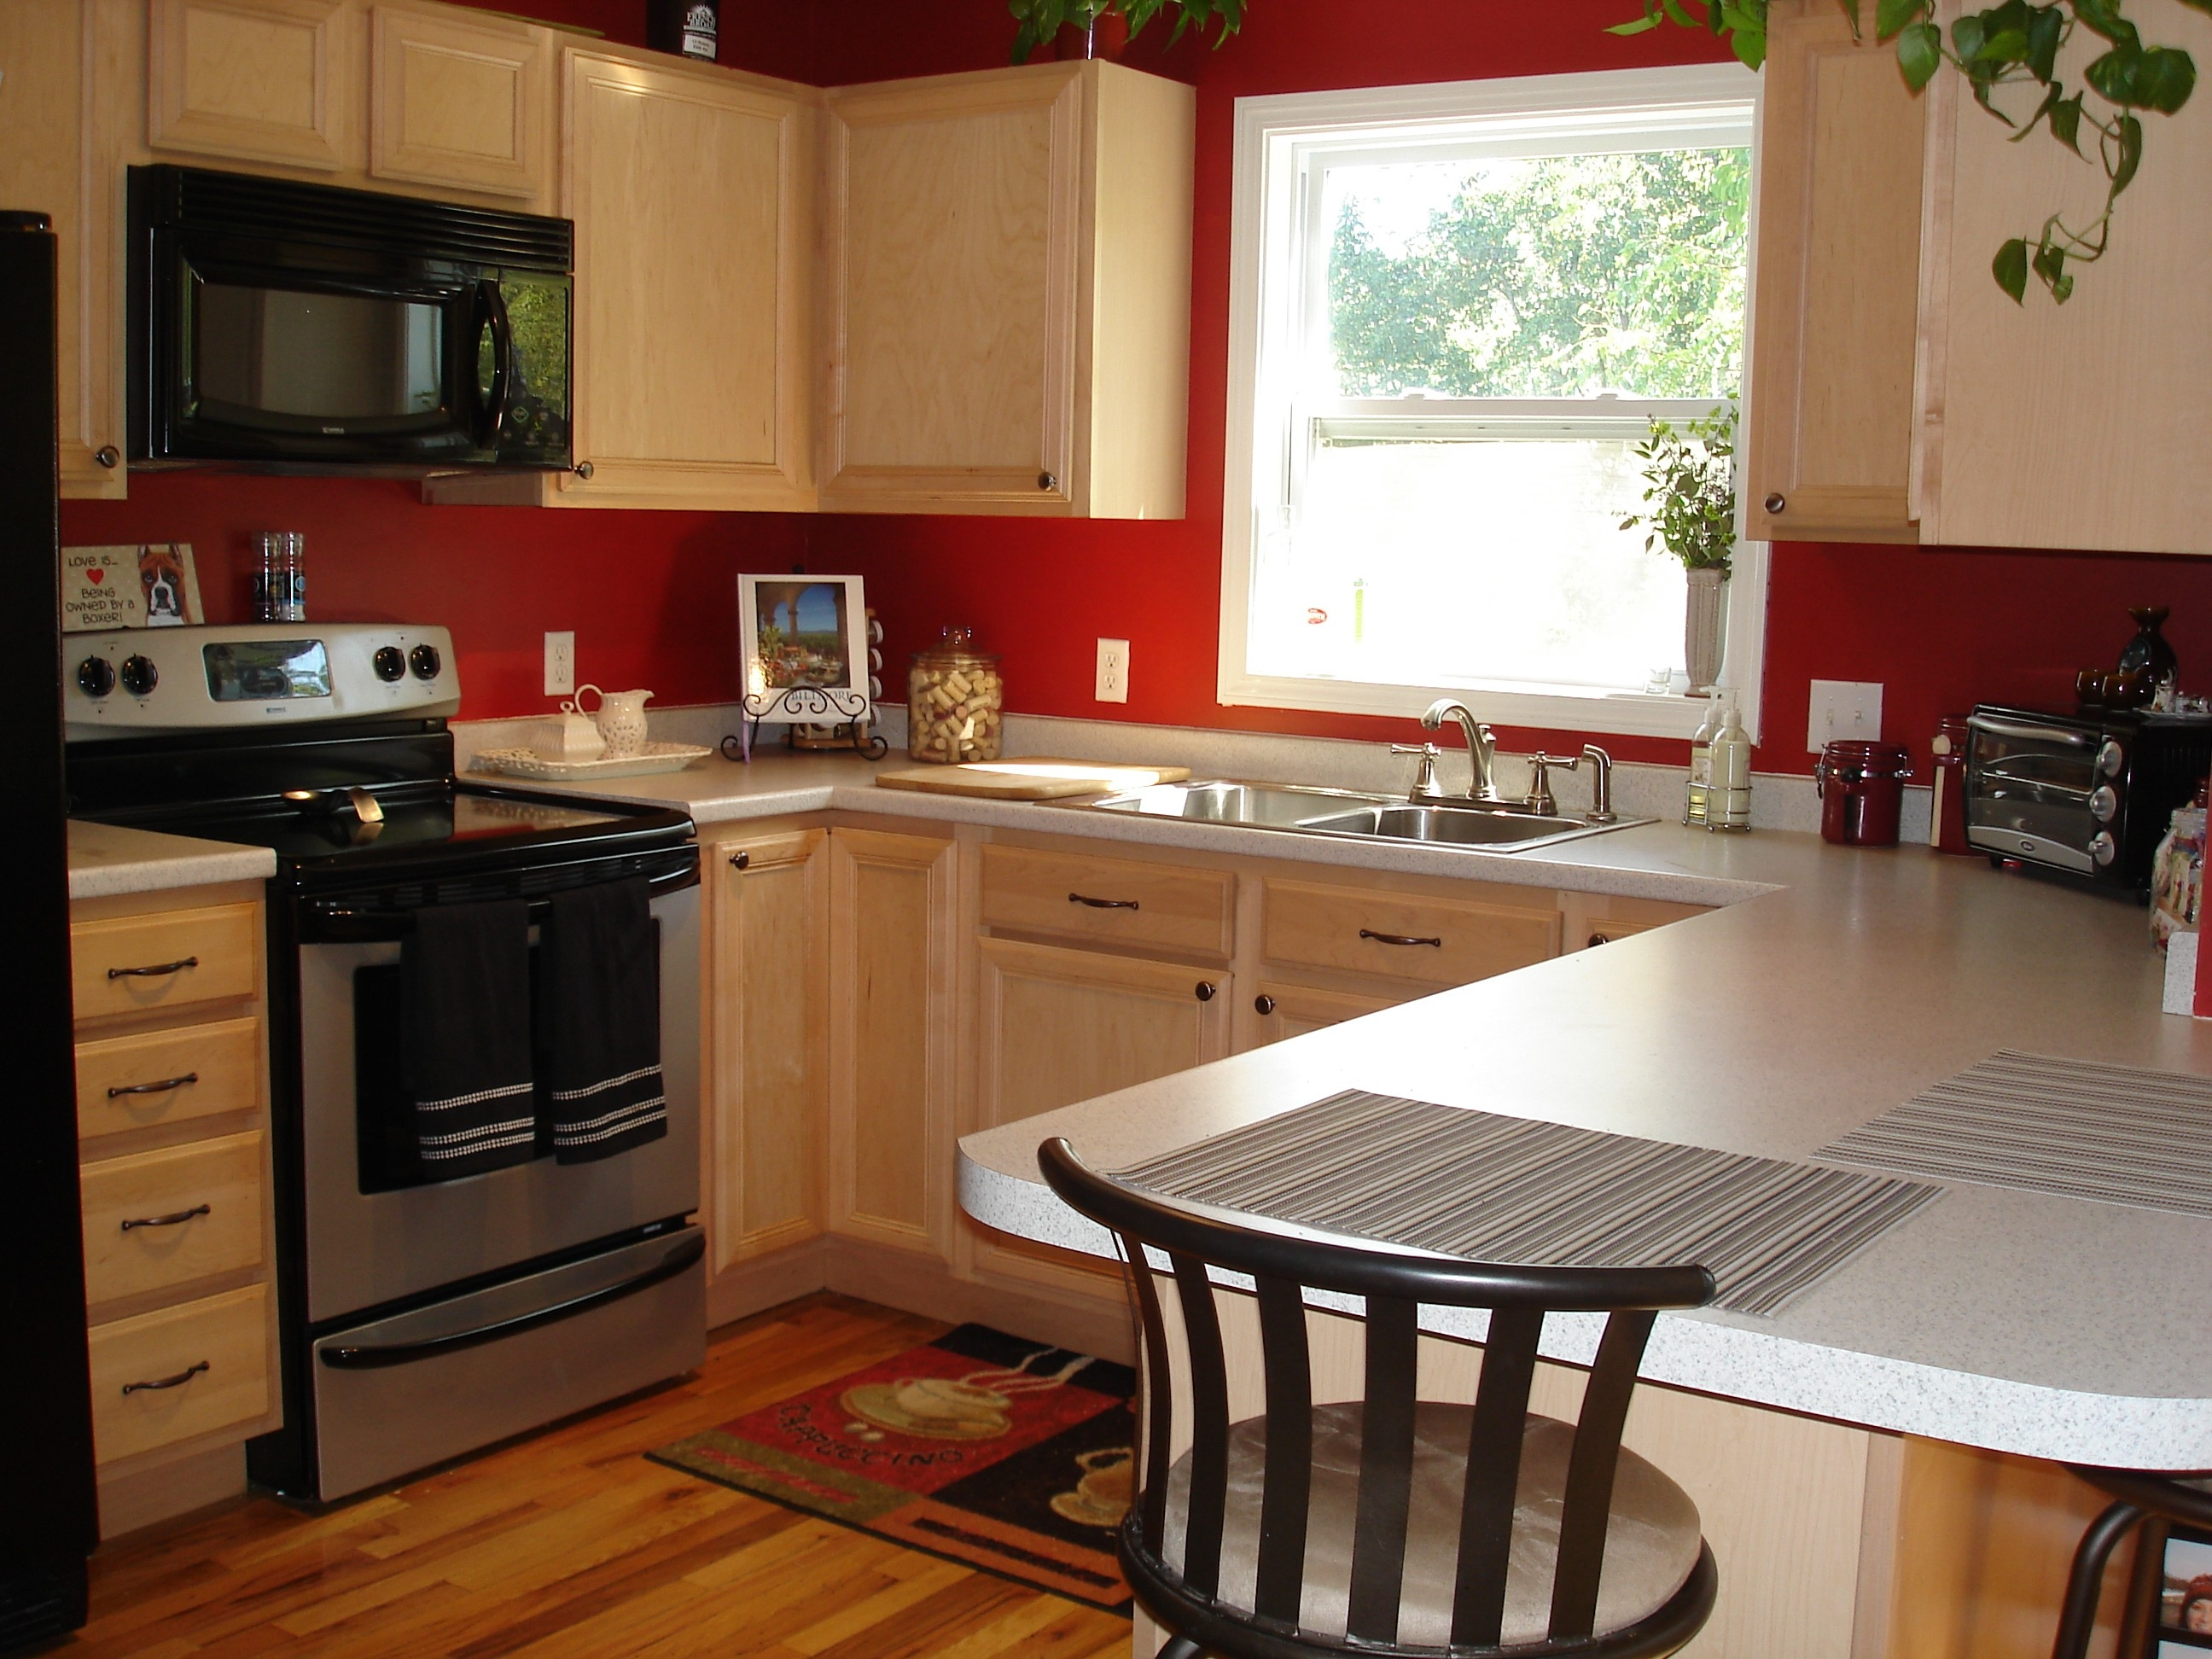 Kitchen Colors That Go With Light Wood Cabinets